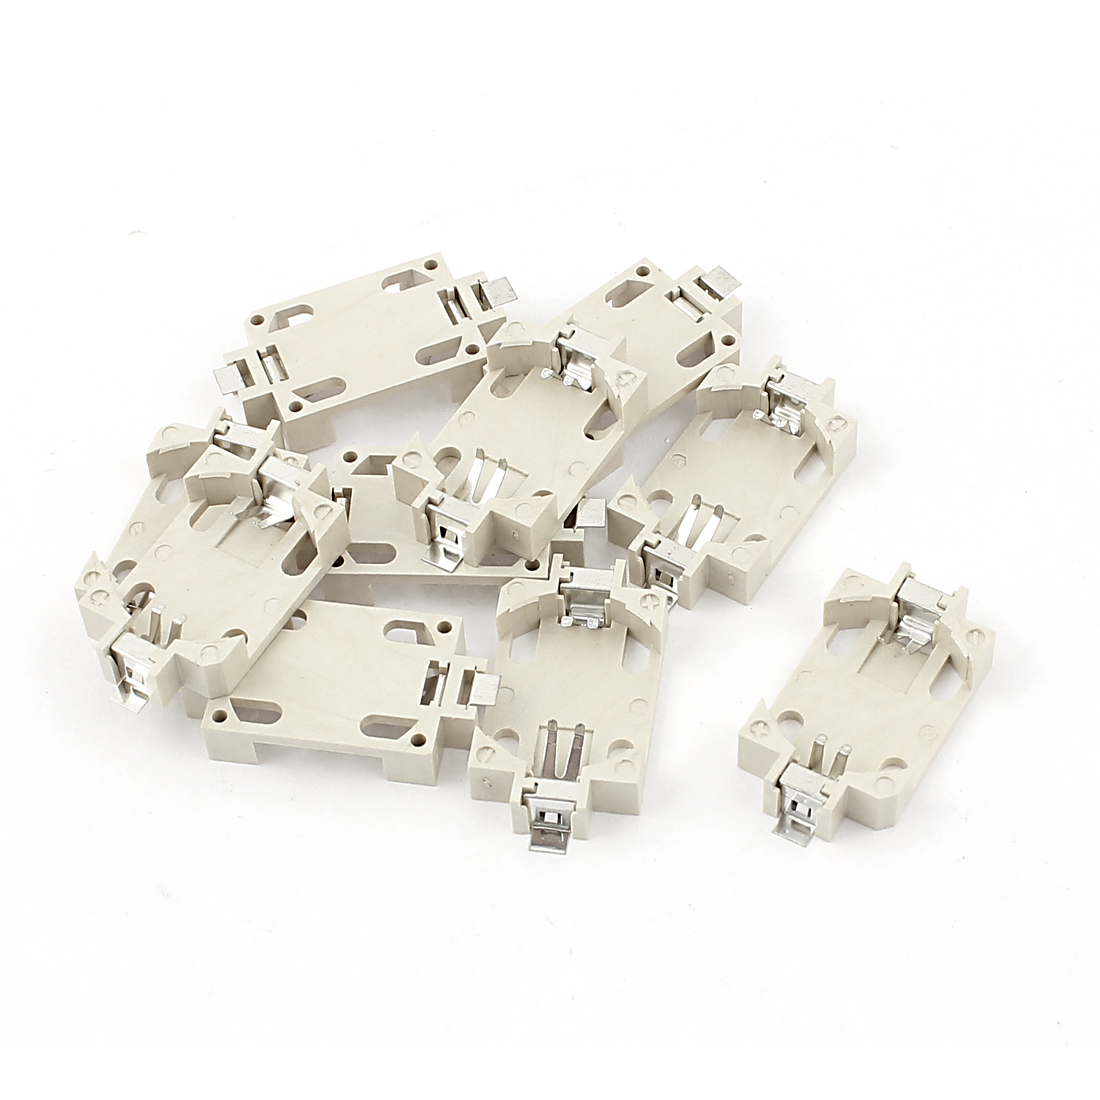 10pcs White Plastic Shell SMD SMT Type Button Battery Holder Socket Case for 1 x 3V CR2032 Coin Cell